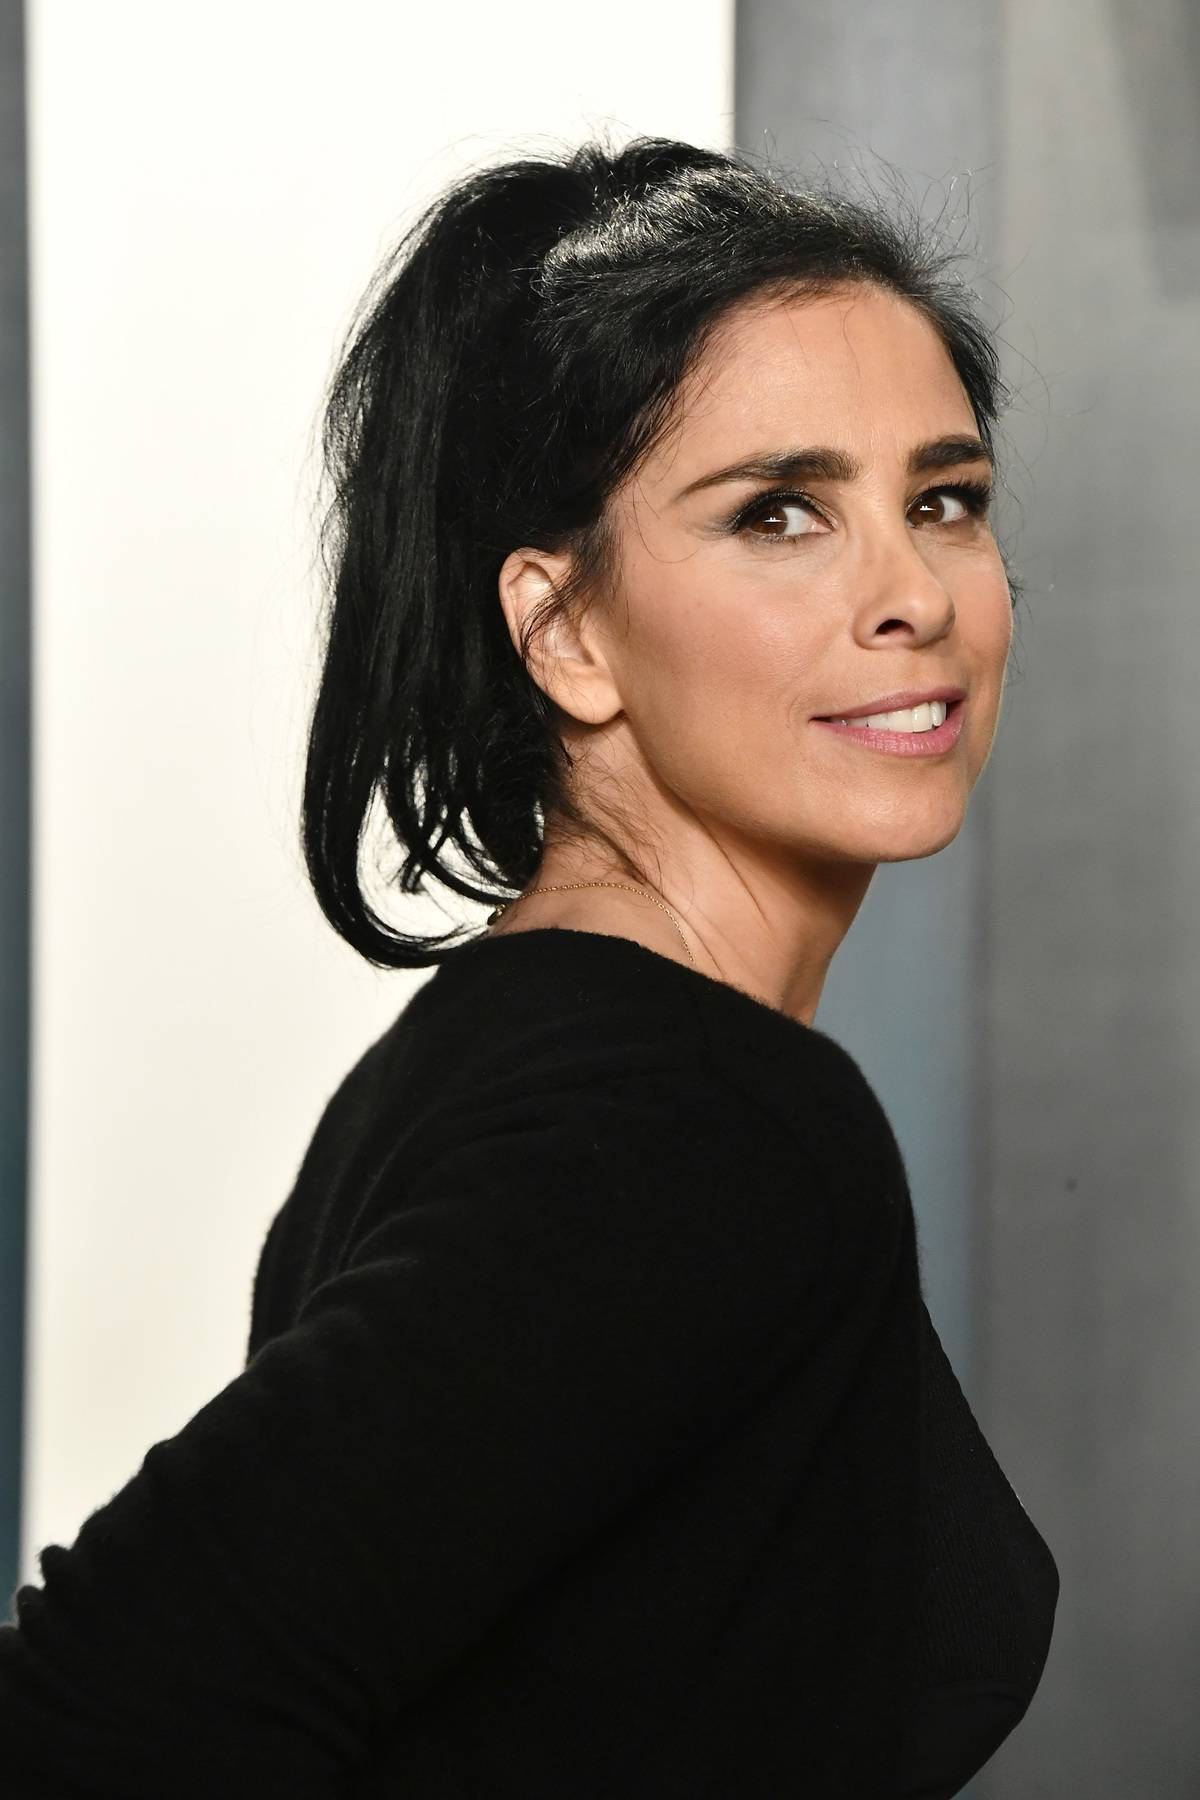 BEVERLY HILLS, CALIFORNIA - FEBRUARY 09: Sarah Silverman attends the 2020 Vanity Fair Oscar Party hosted by Radhika Jones at Wallis Annenberg Center for the Performing Arts on February 09, 2020 in Beverly Hills, California